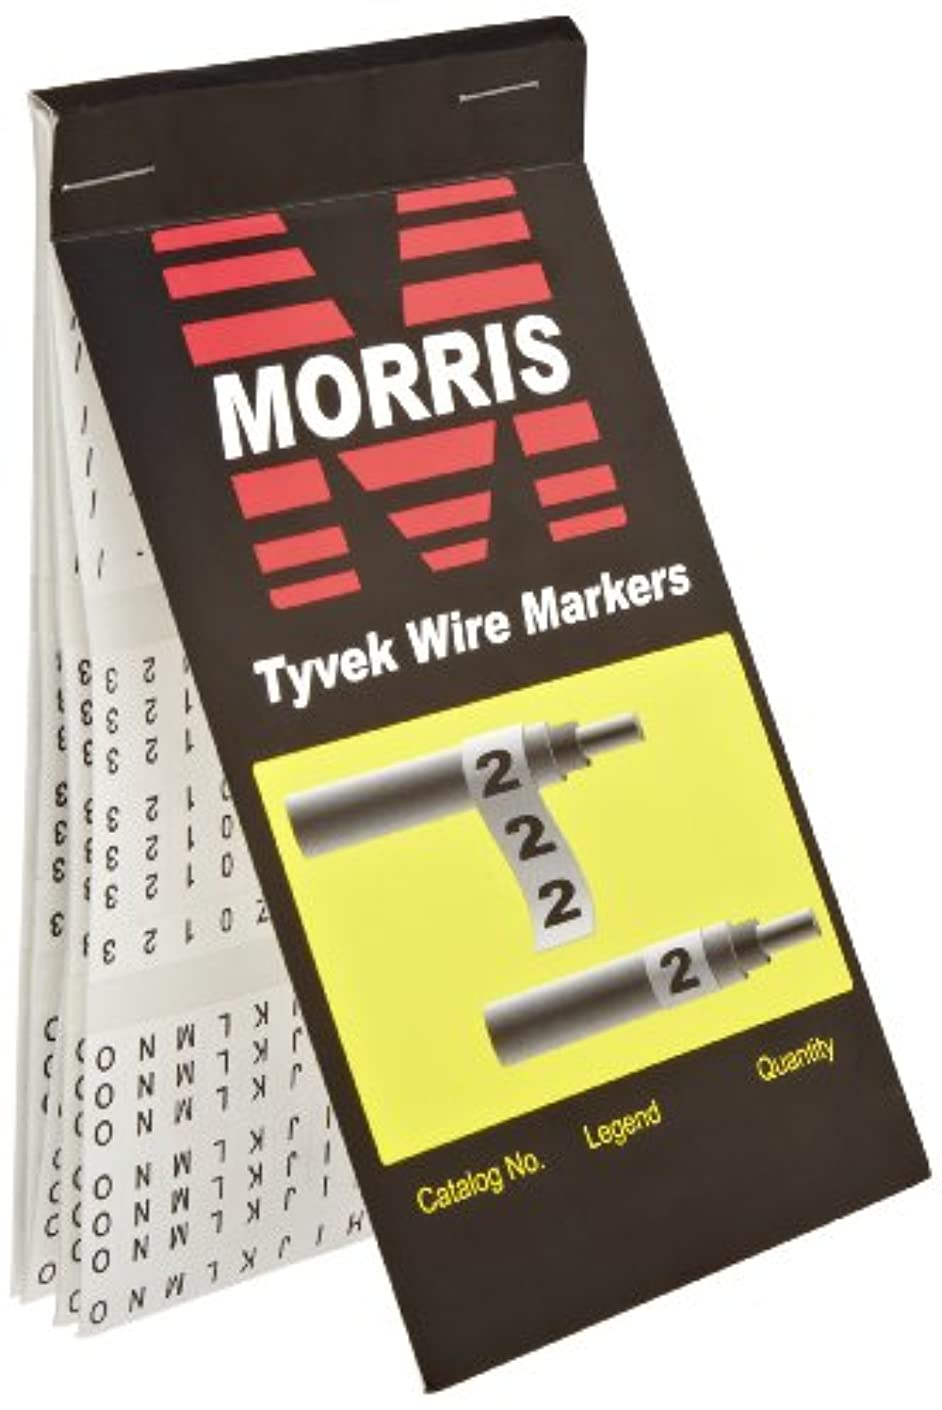 Morris Products Pre-Printed Wire Marker Booklet - Tyvek Book A - Z, 0 - 15, + - / Marking - 10 Markers Per Legend – For Cable Hook Ups – Oil, Water Resistant – Self-Adhesive Cloth Material – 1 Count